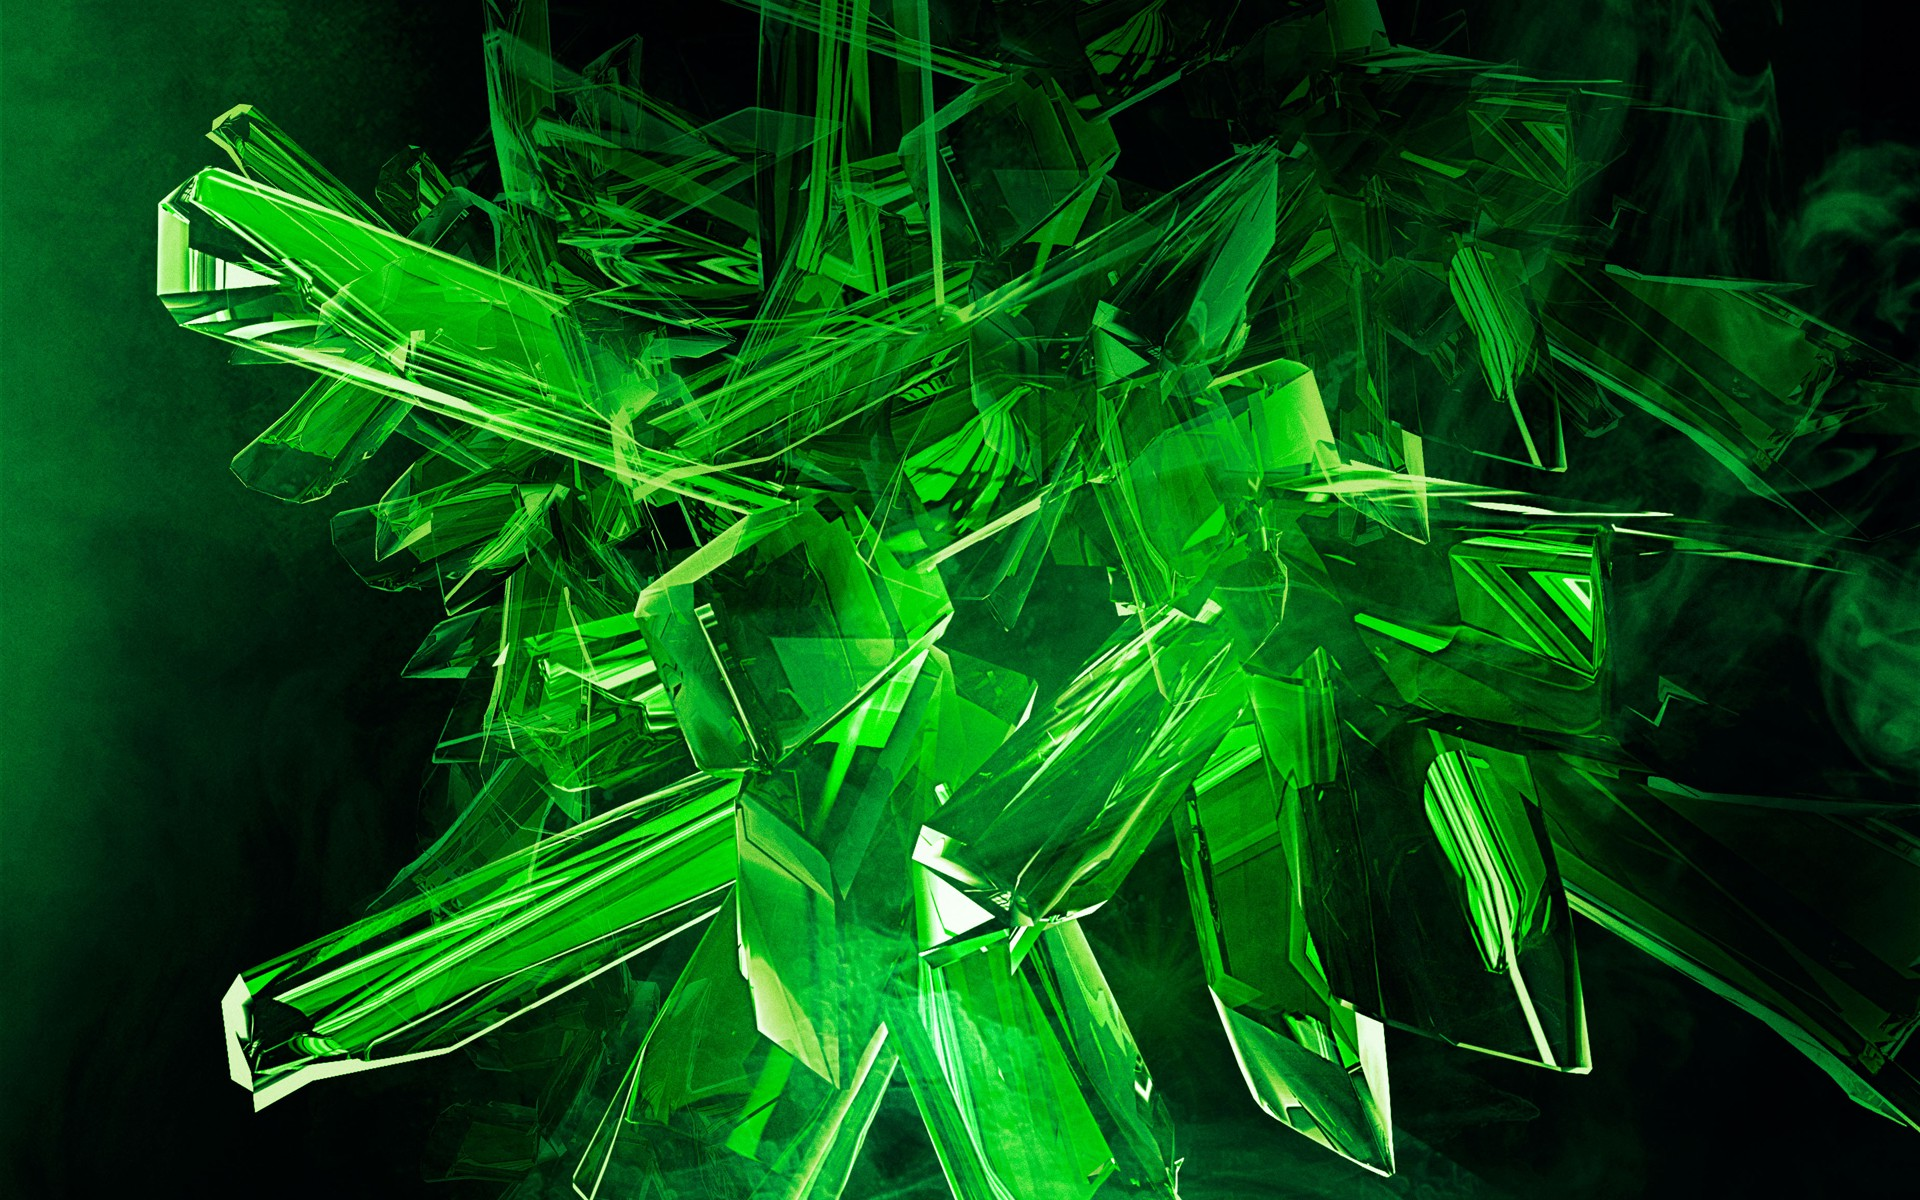 Gold 3d Hd Wallpapers Digital Art Abstract Green Crystal Wallpapers Hd